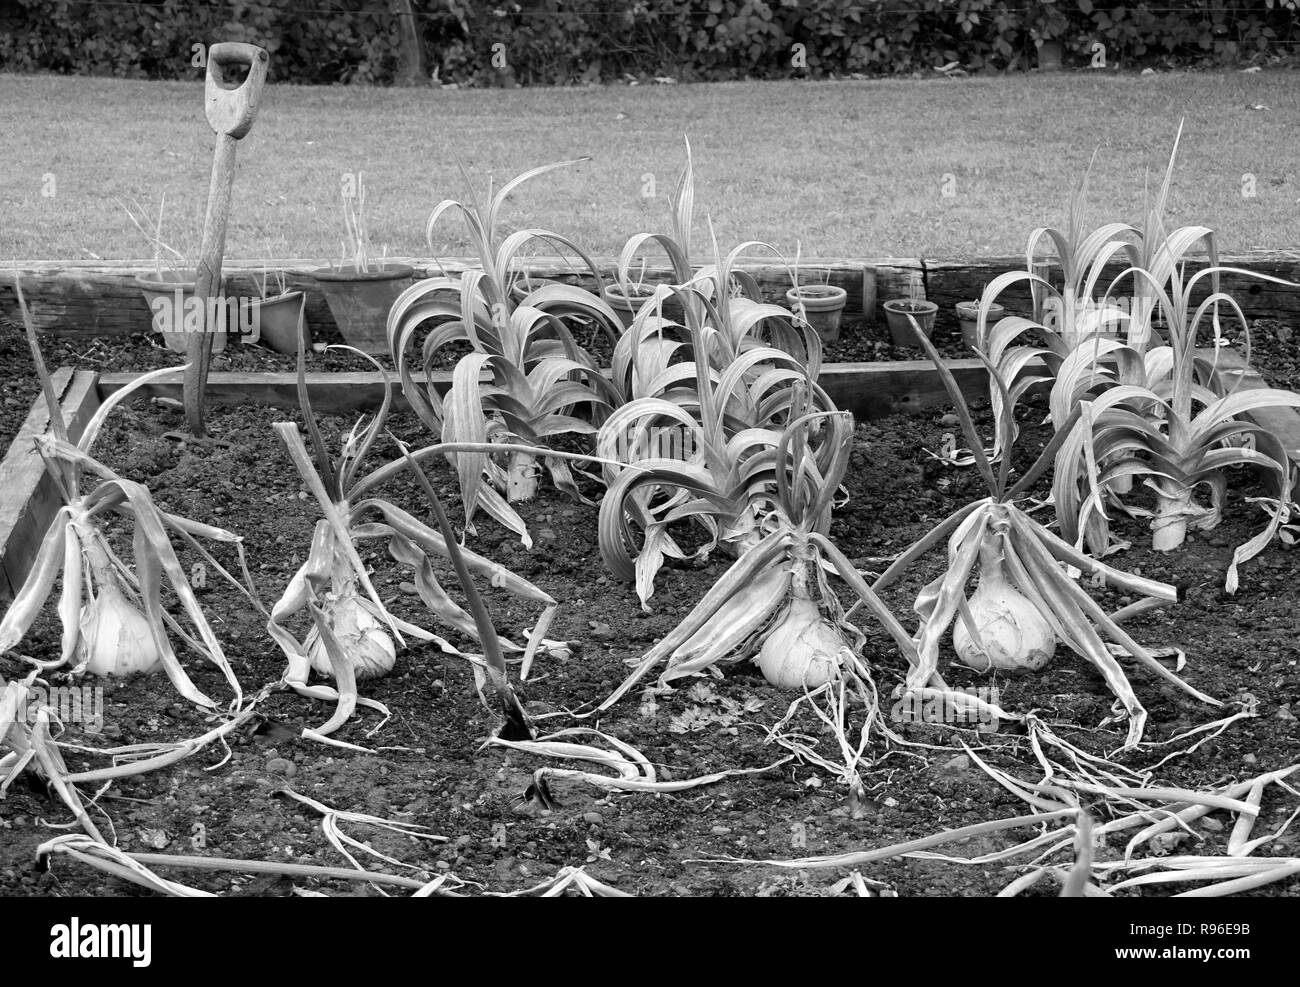 onions growing in an allotment northumberland england - Stock Image